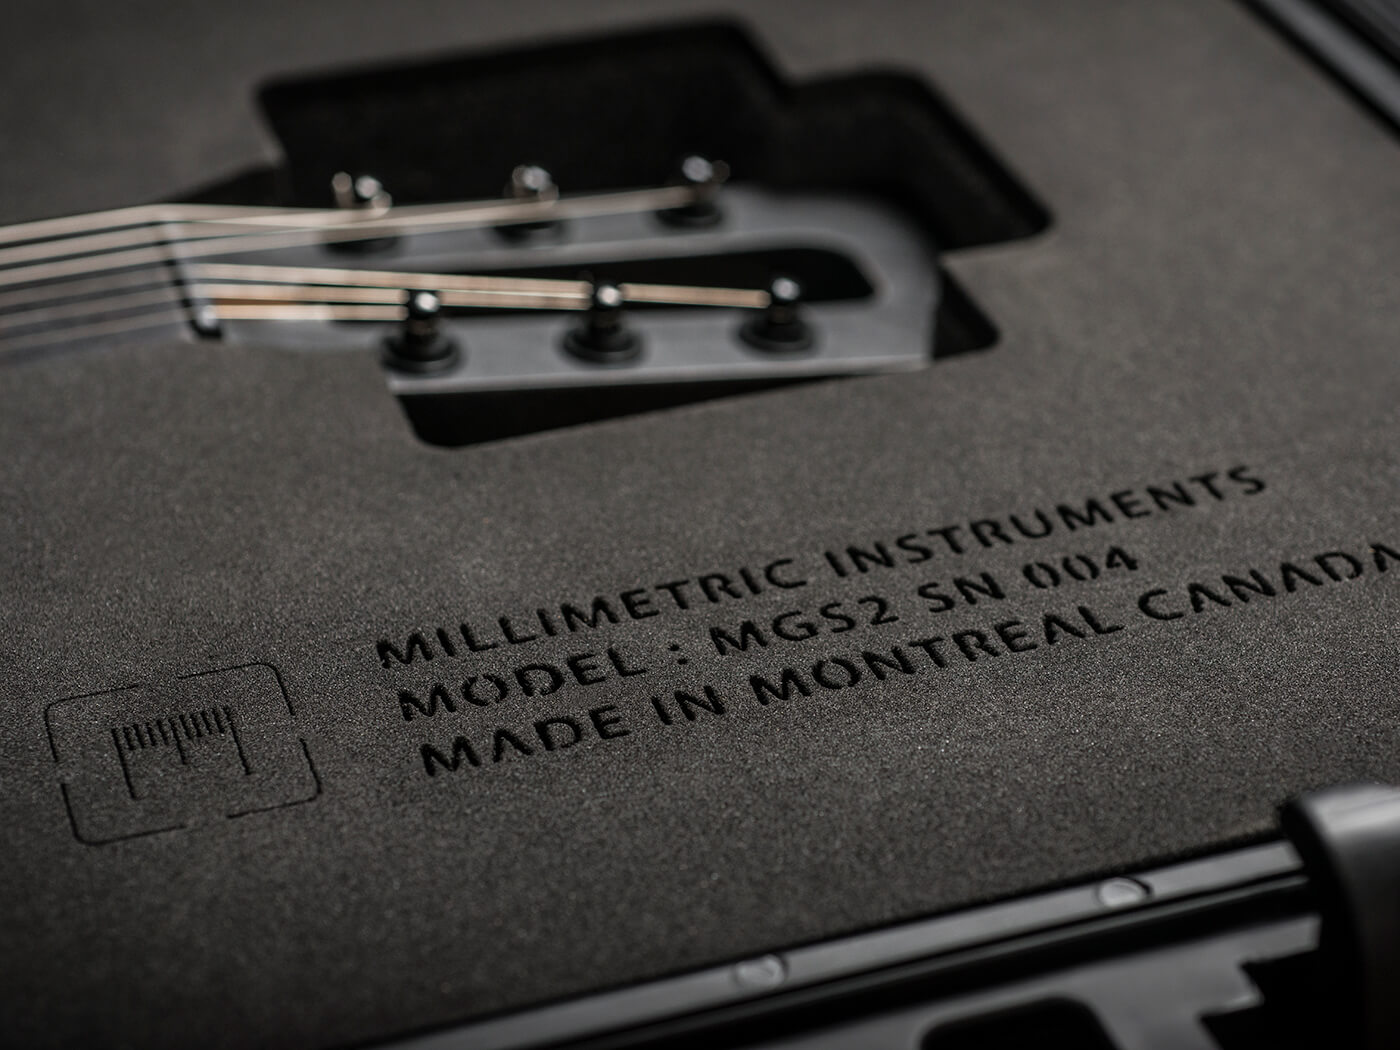 Millimetric Instruments MGS2